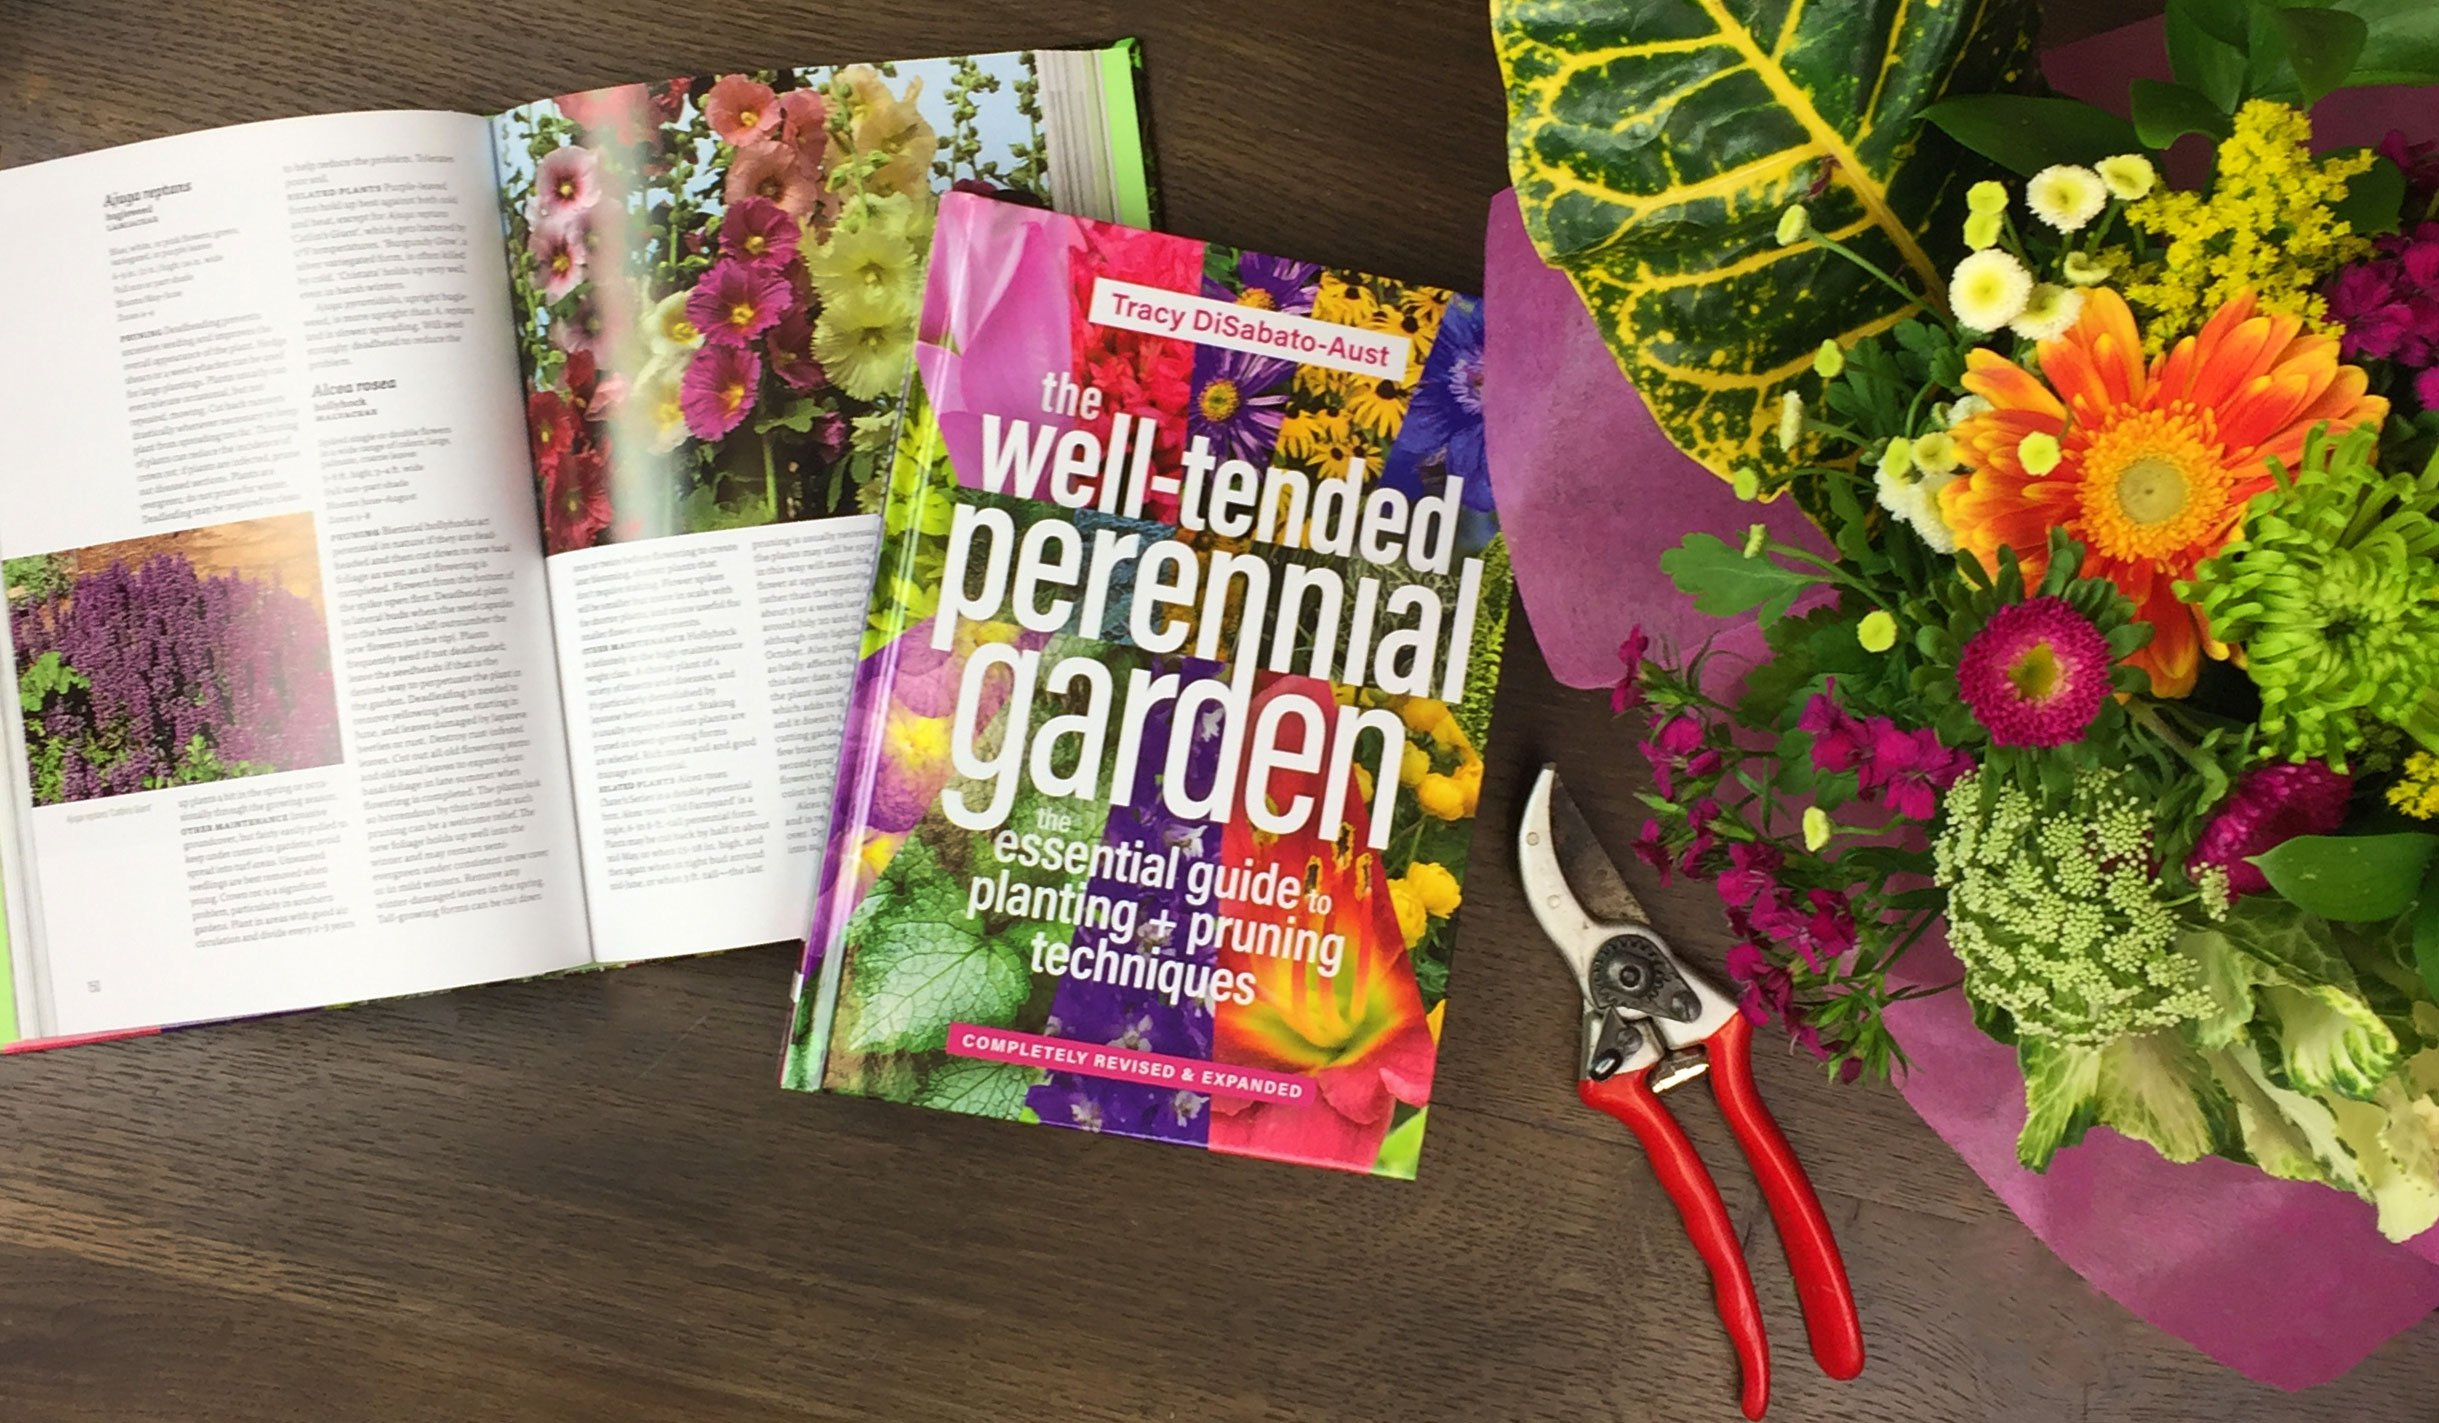 The Well-Tended Perennial Garden: The Essential Guide to Planting and  Pruning Techniques, Third Edition: DiSabato-Aust, Tracy: 9781604697070:  Amazon.com: Books